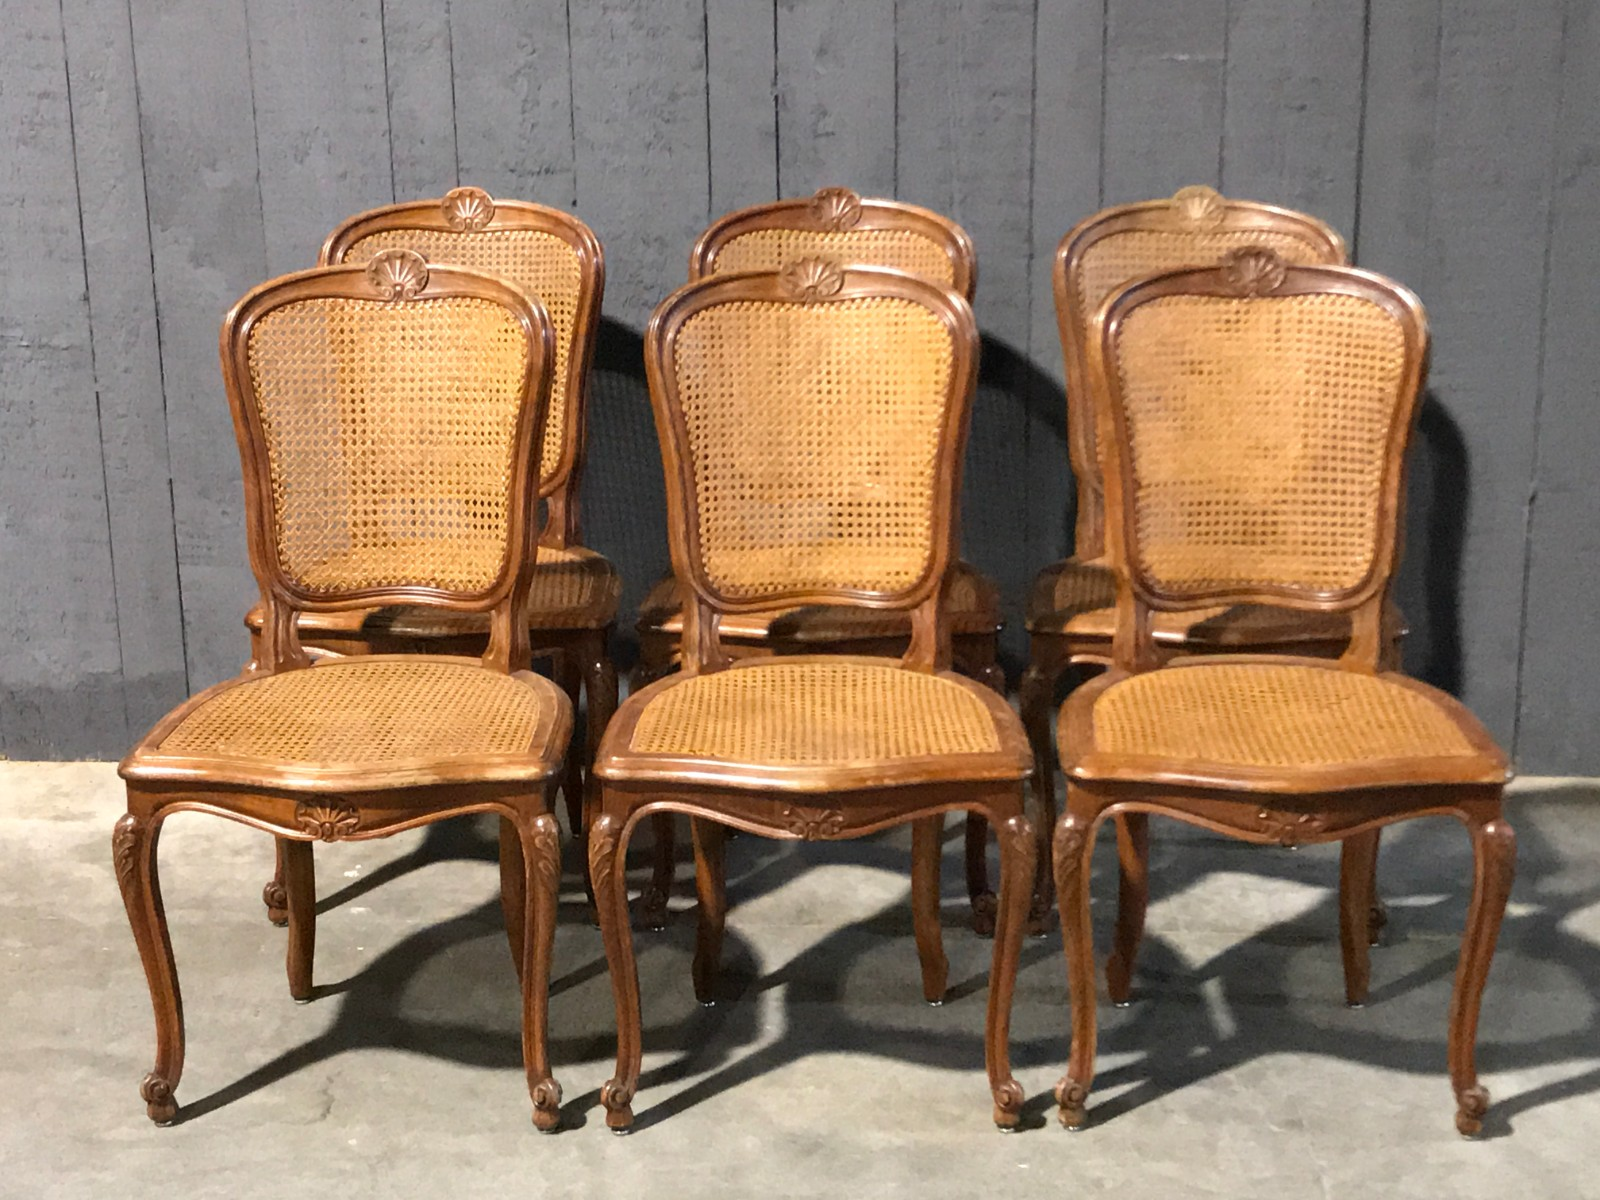 Six Louis Xv Cherry Wood Dining Chairs